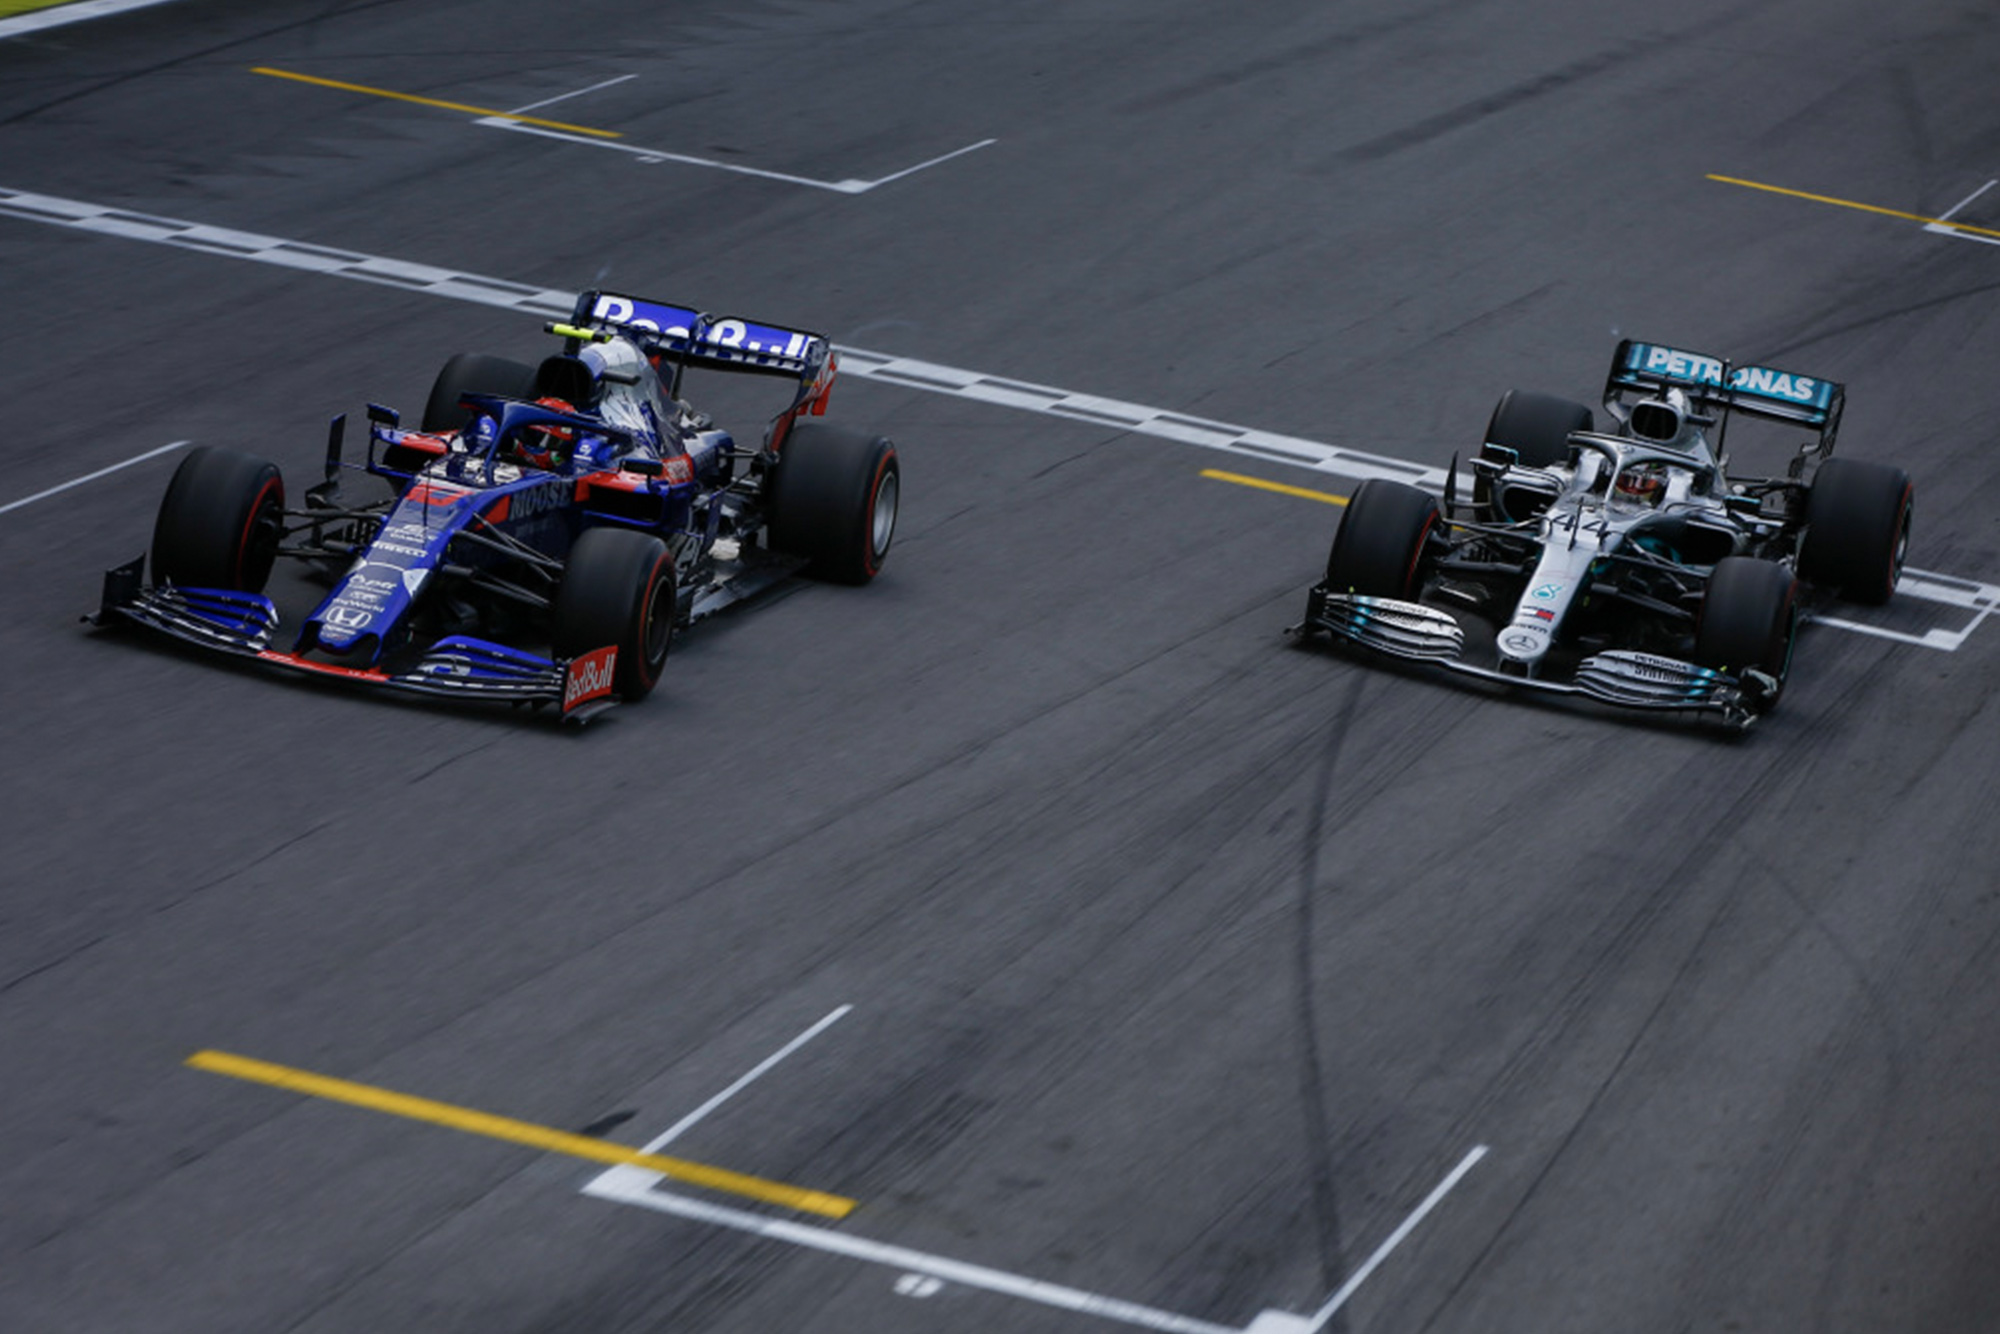 Pierre Gasly's Toro Rosso Honda out-drags Lewis Hamilton's Mercedes for second during the 2019 Brazilian Grand Prix